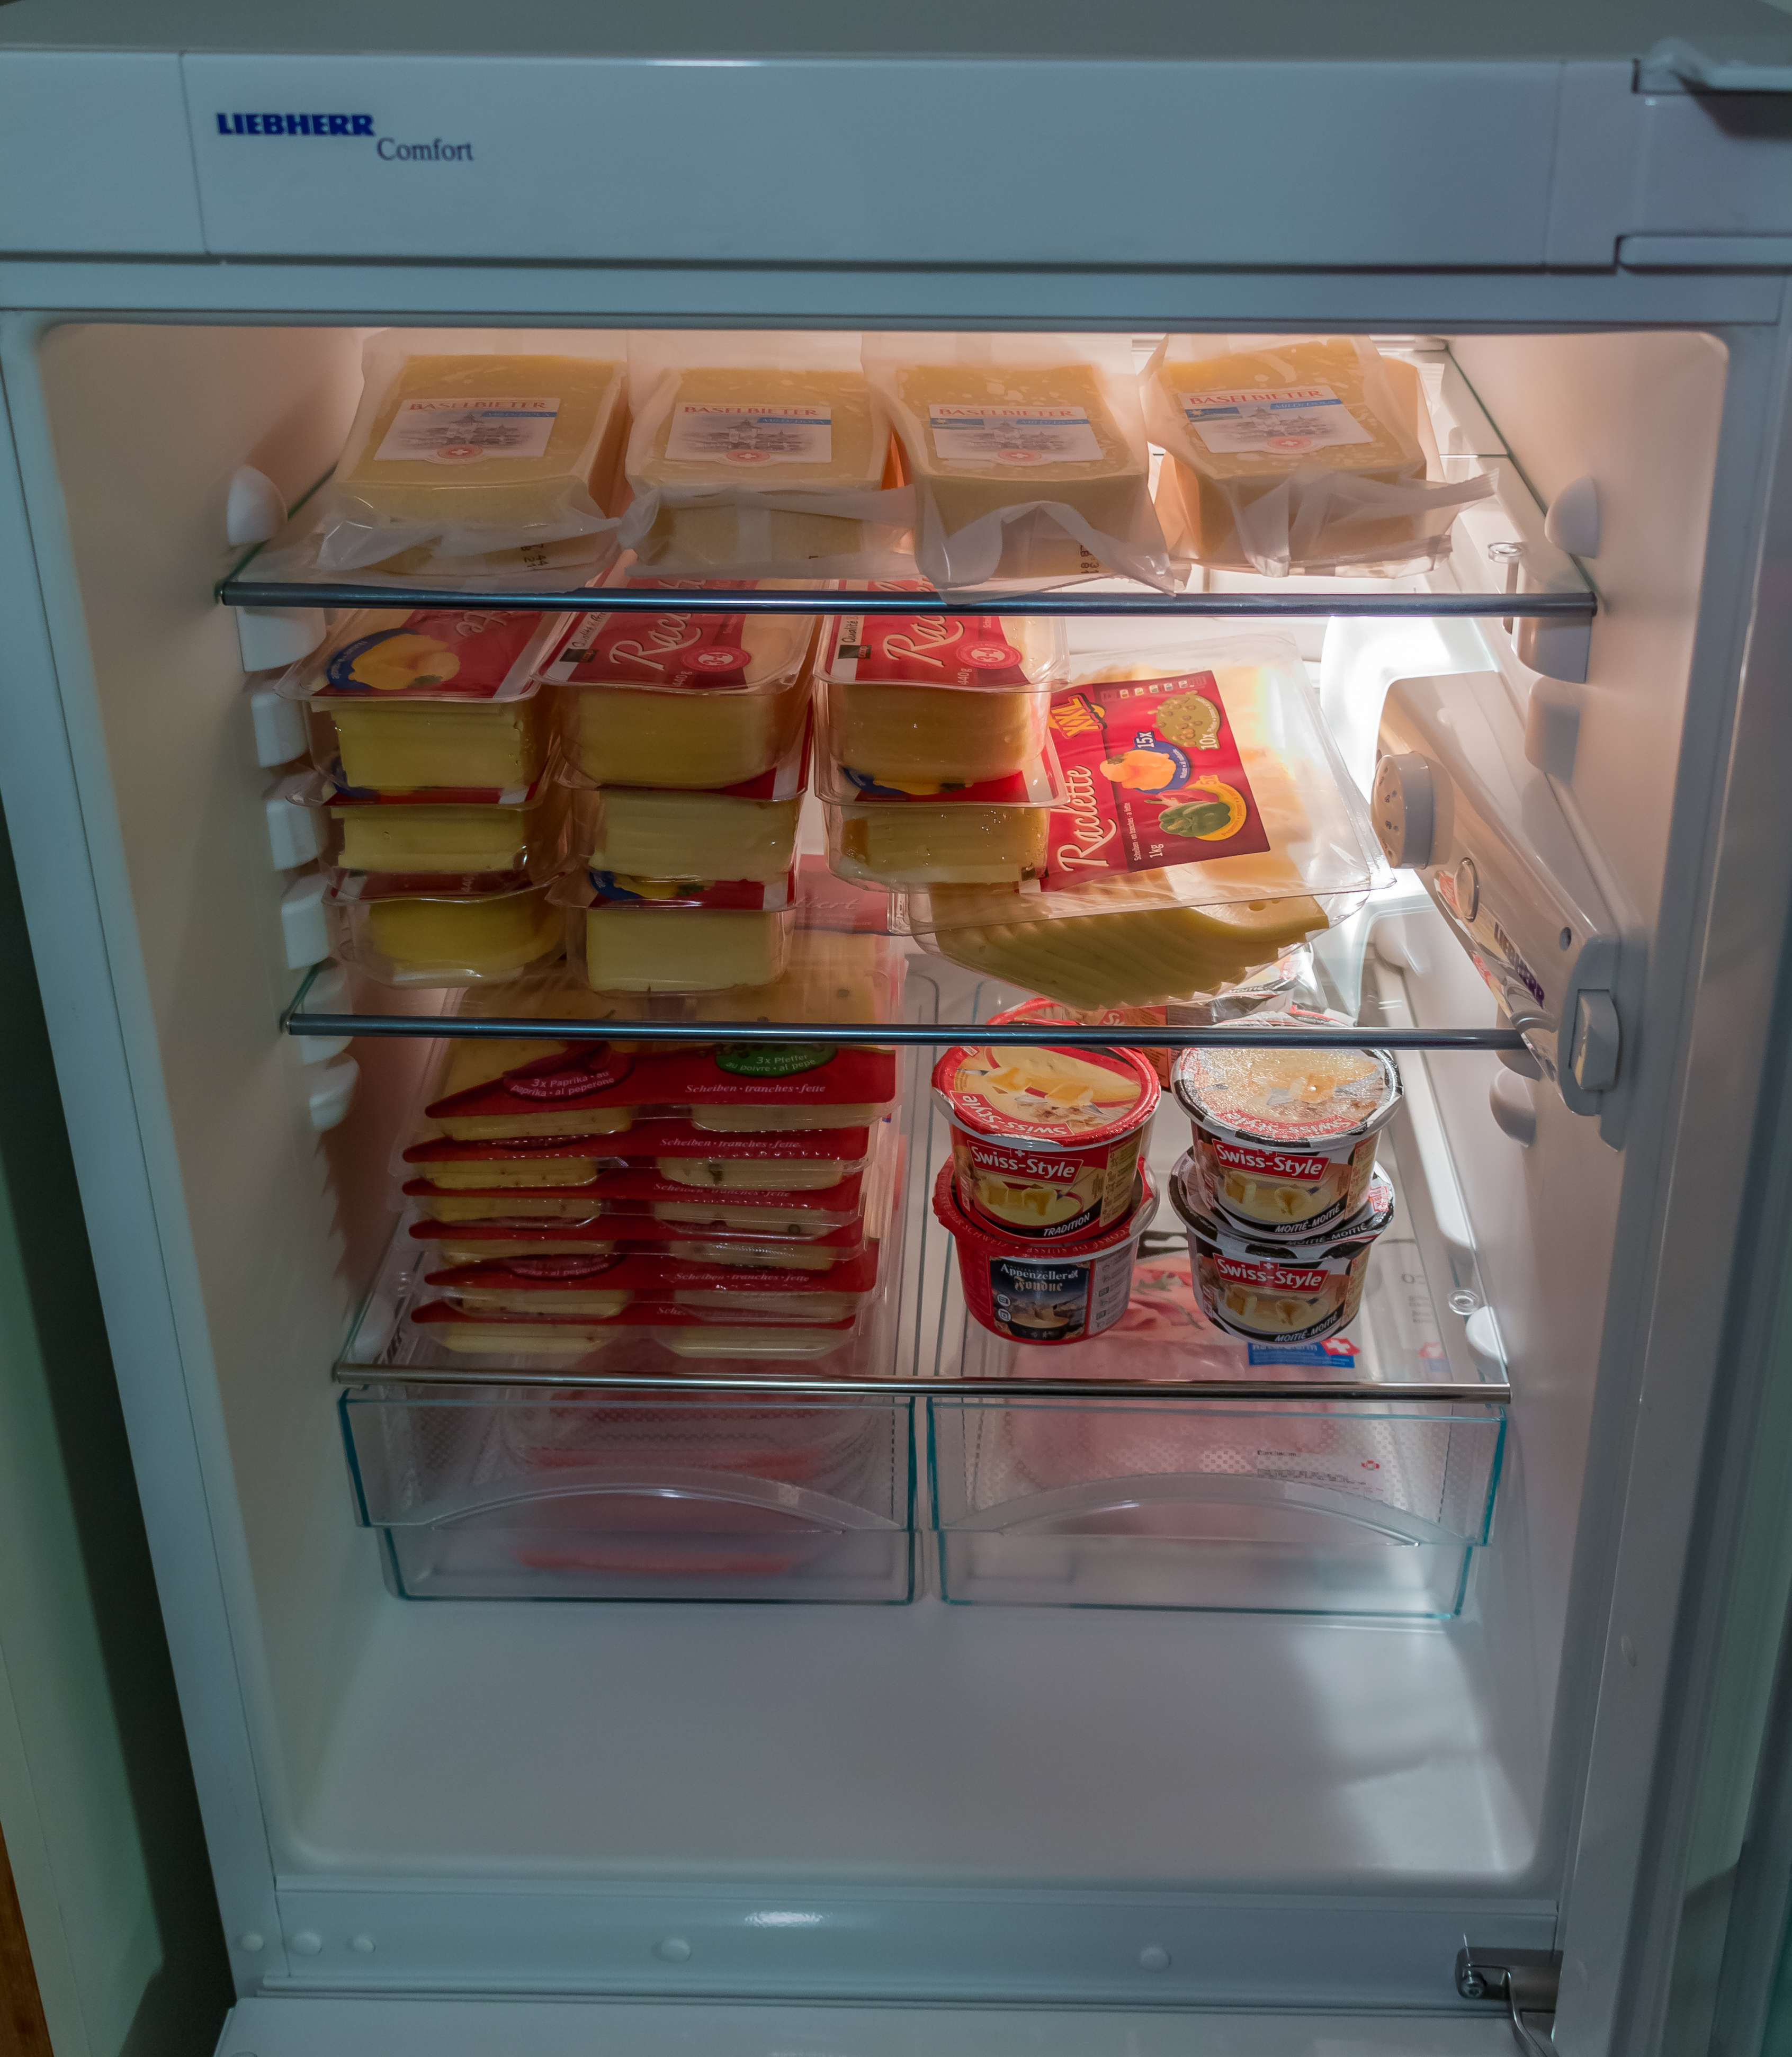 Swiss souvenirs in the fridge at home